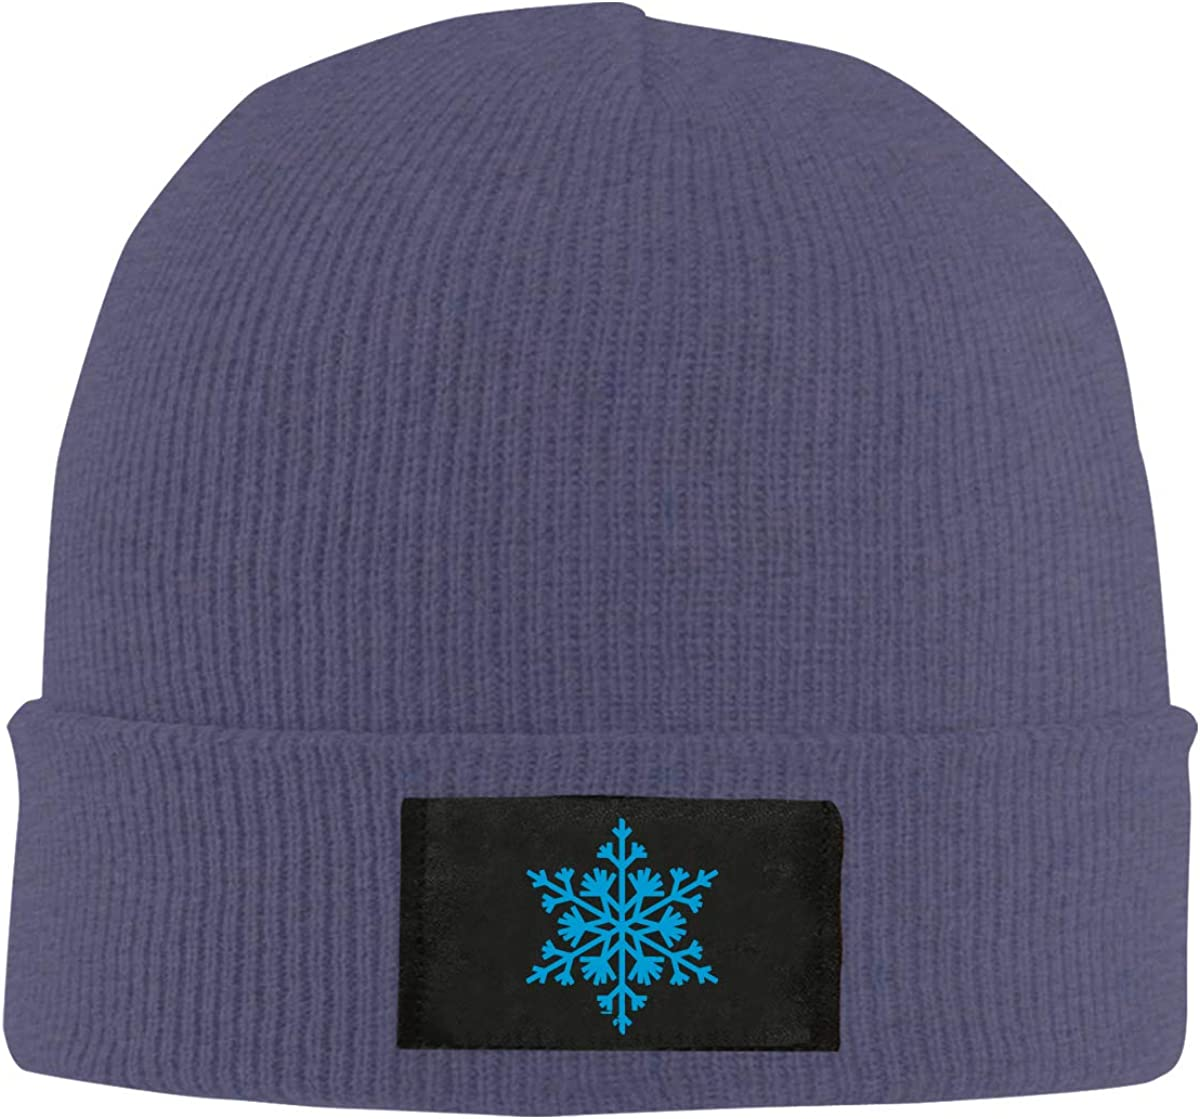 100/% Acrylic Soft Beanies Cap Mens and Womens Big Snowflakes Knitted Cap